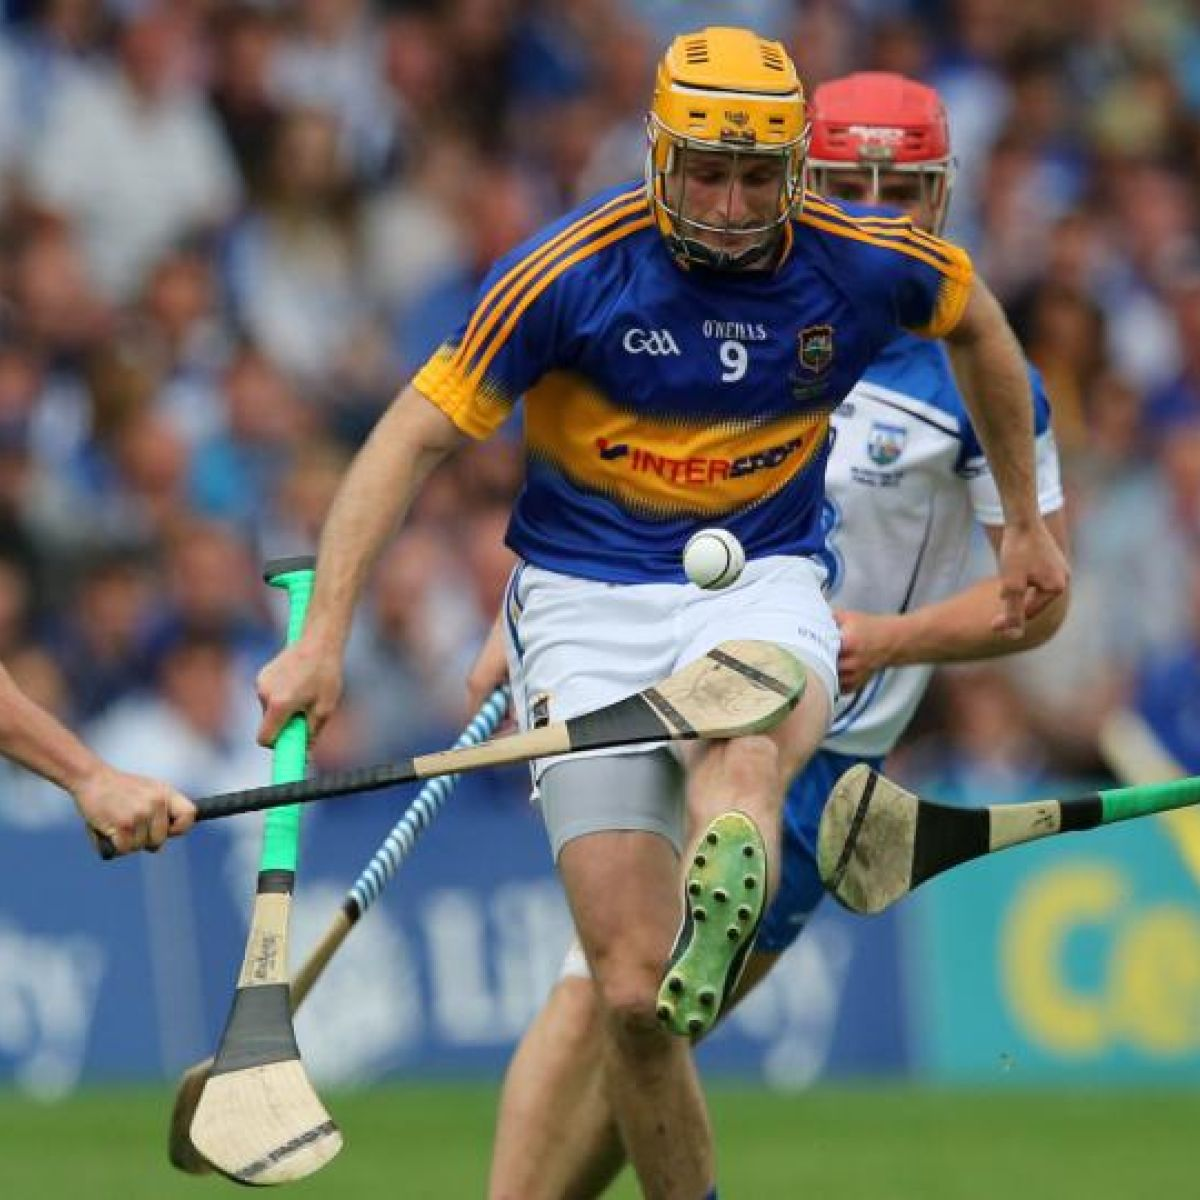 All roads lead to Semple Stadium: Getting there on Match Day